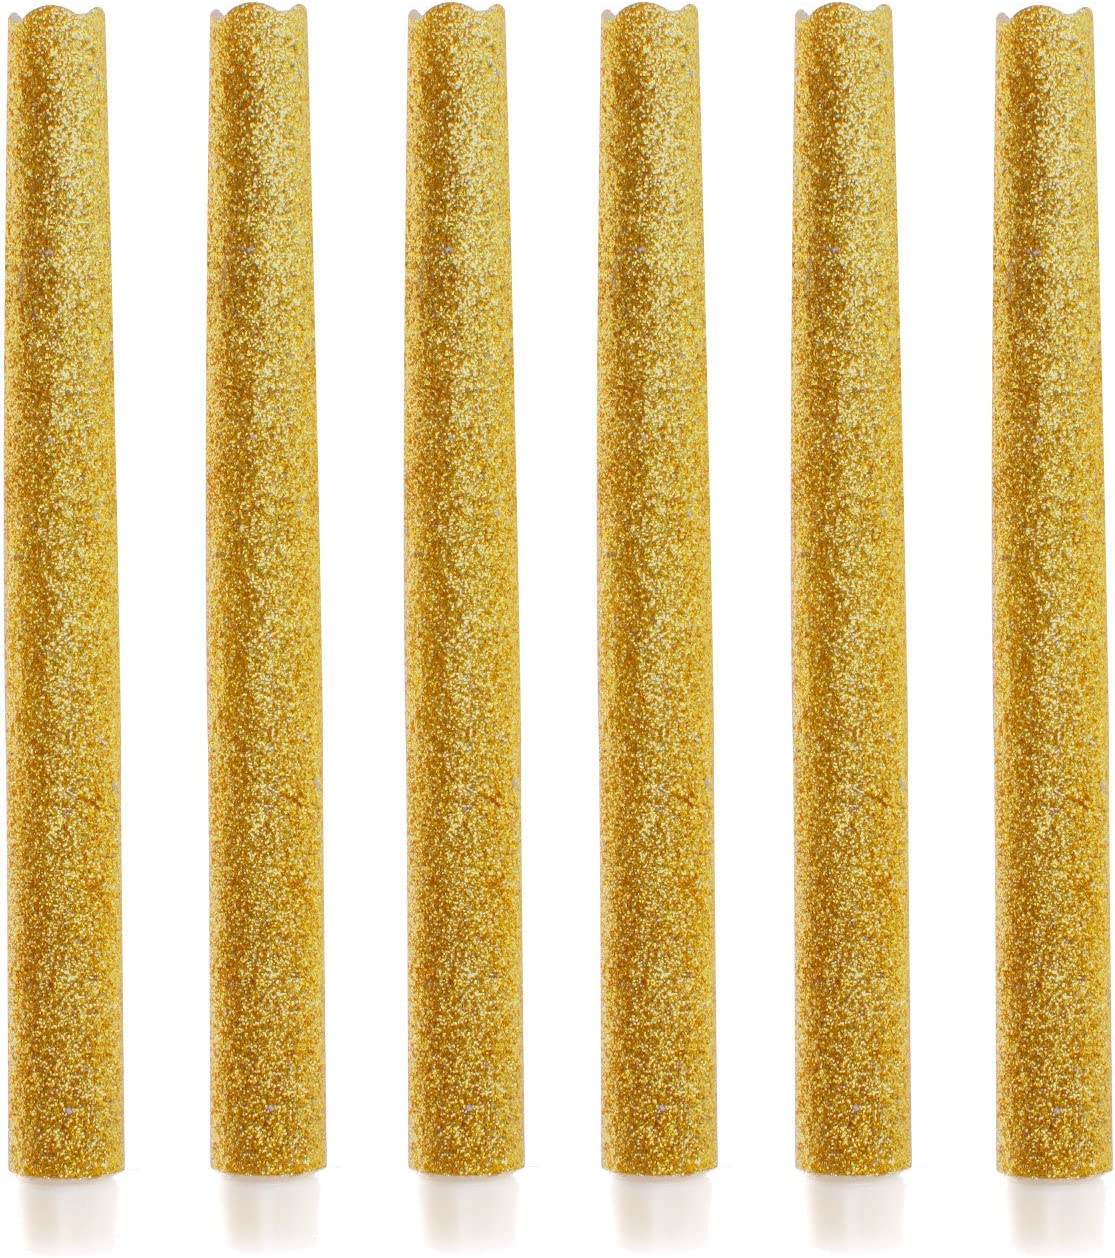 9 Set Of 6 Flameless Led Taper Candles With Timer Battery Operated Candle With Gold Glitter For Wedding Halloween Christmas Decoration Amazon Co Uk Kitchen Home